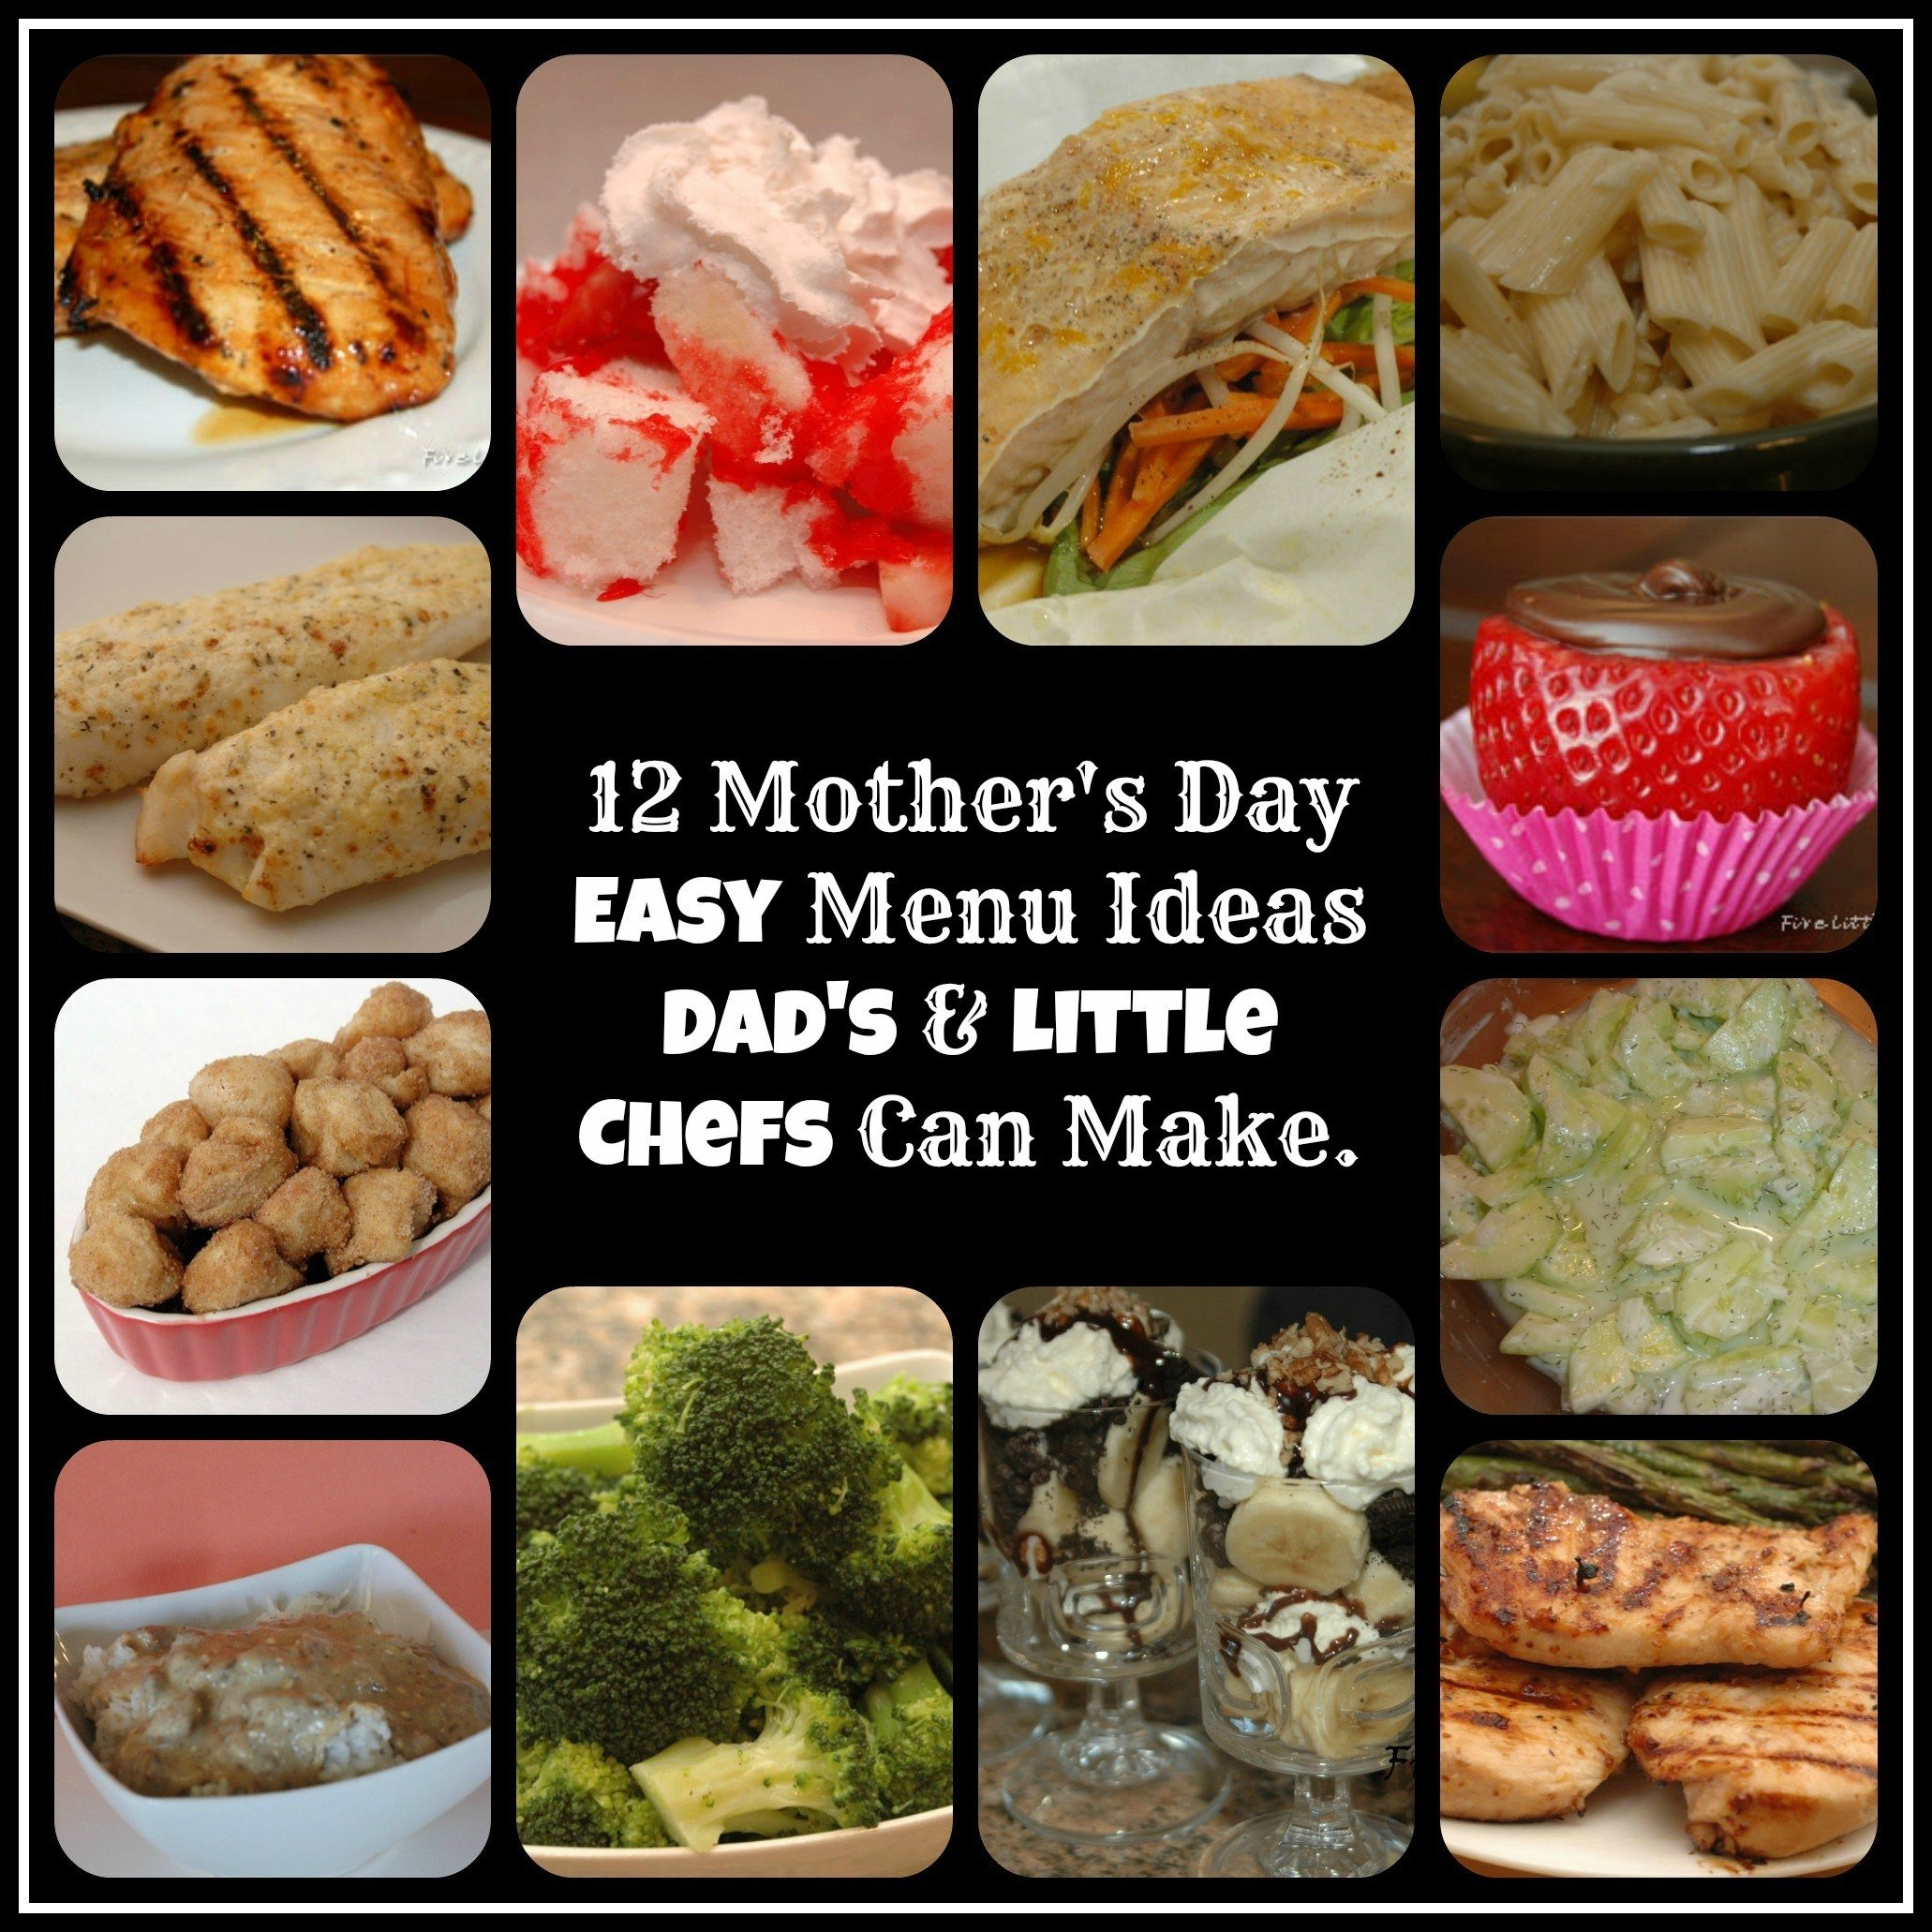 10 Perfect Mother Day Dinner Menu Ideas mothers day menu ideas five little chefs 2021